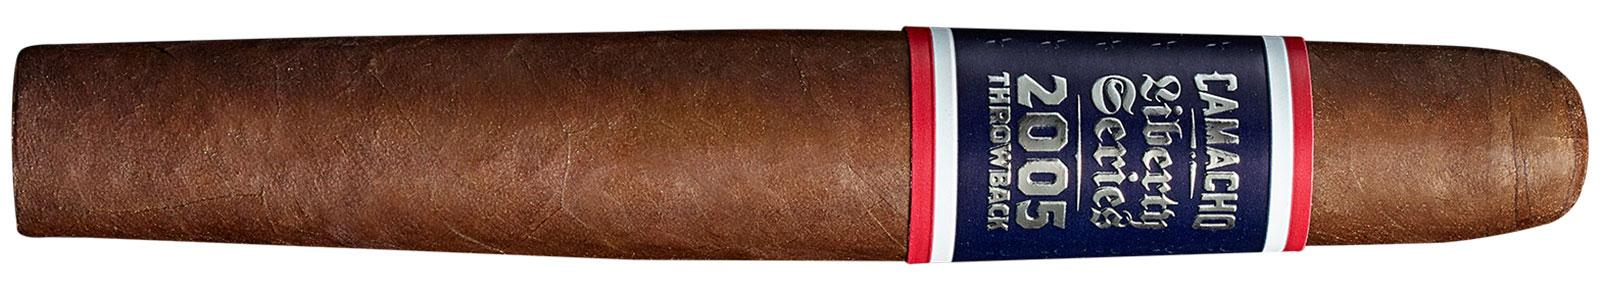 Camacho Liberty 2005 Throwback is a double-tapered figurado called 11/18.